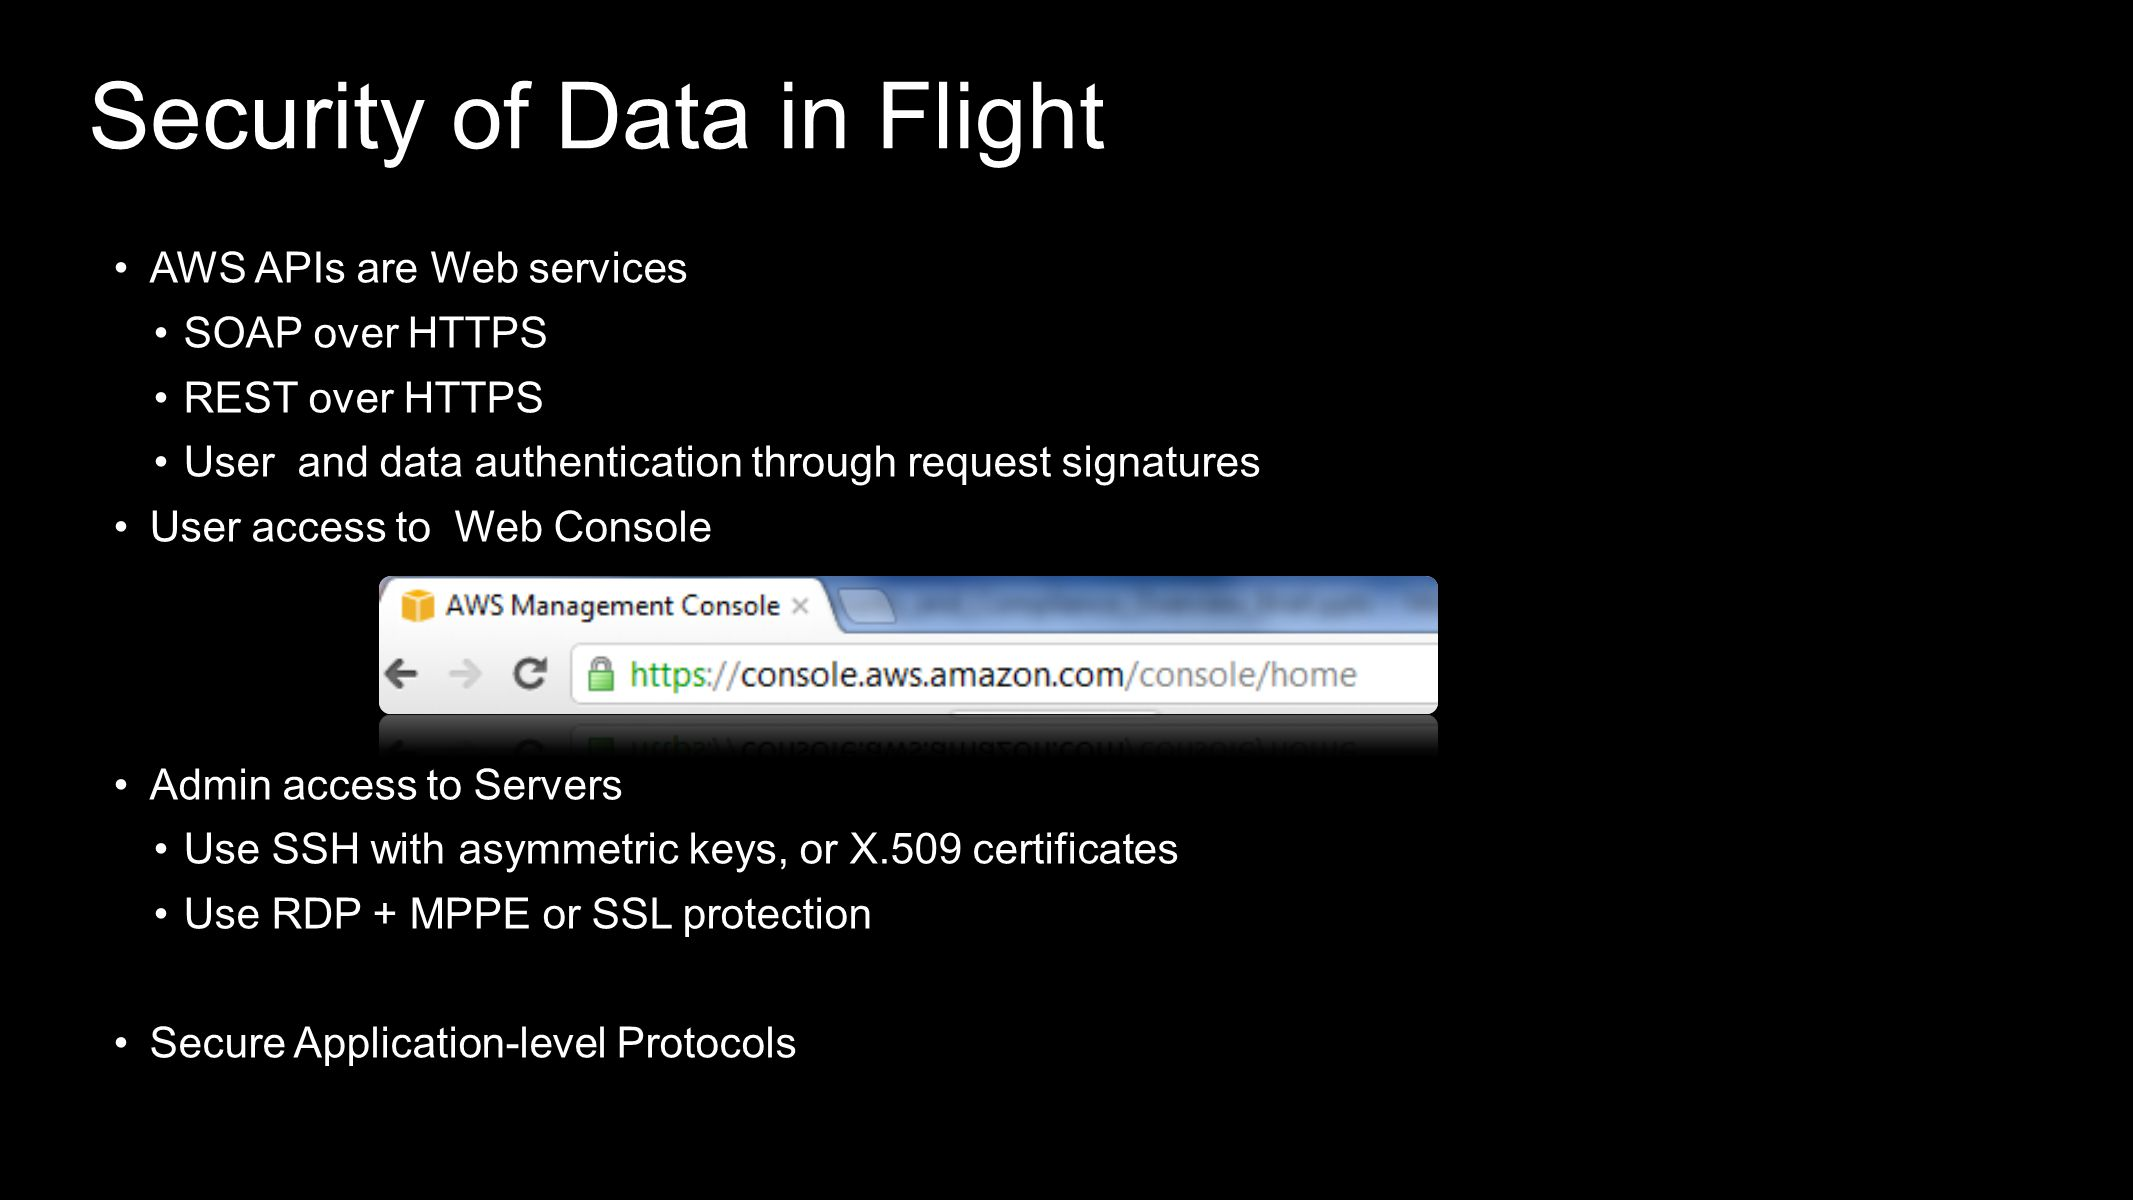 Security of Data in Flight